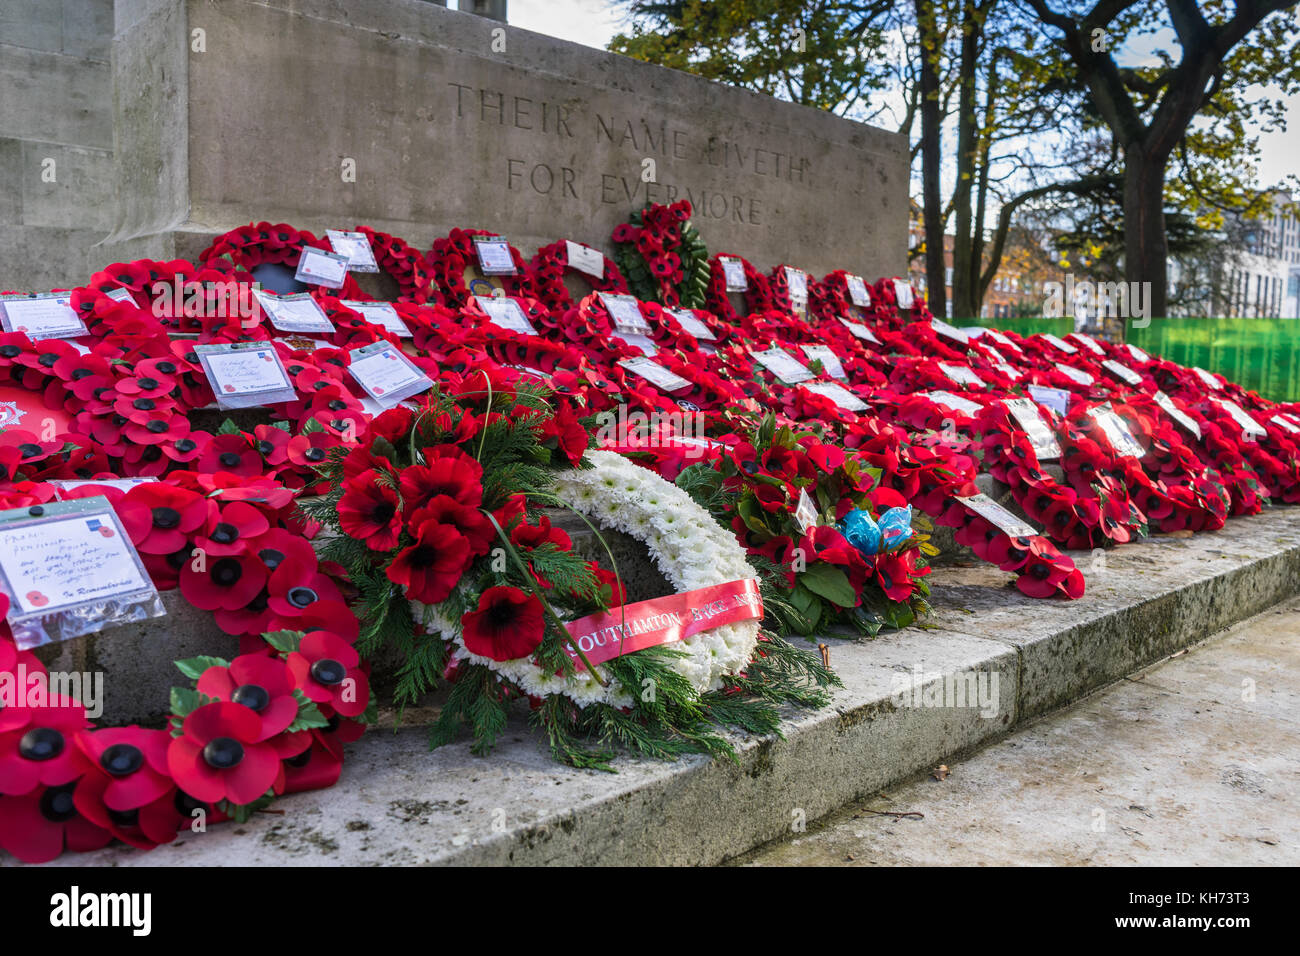 Red poppy wreaths laid during Remembrance Day commemoration at Southampton Cenotaph in November 2017, Hampshire, - Stock Image